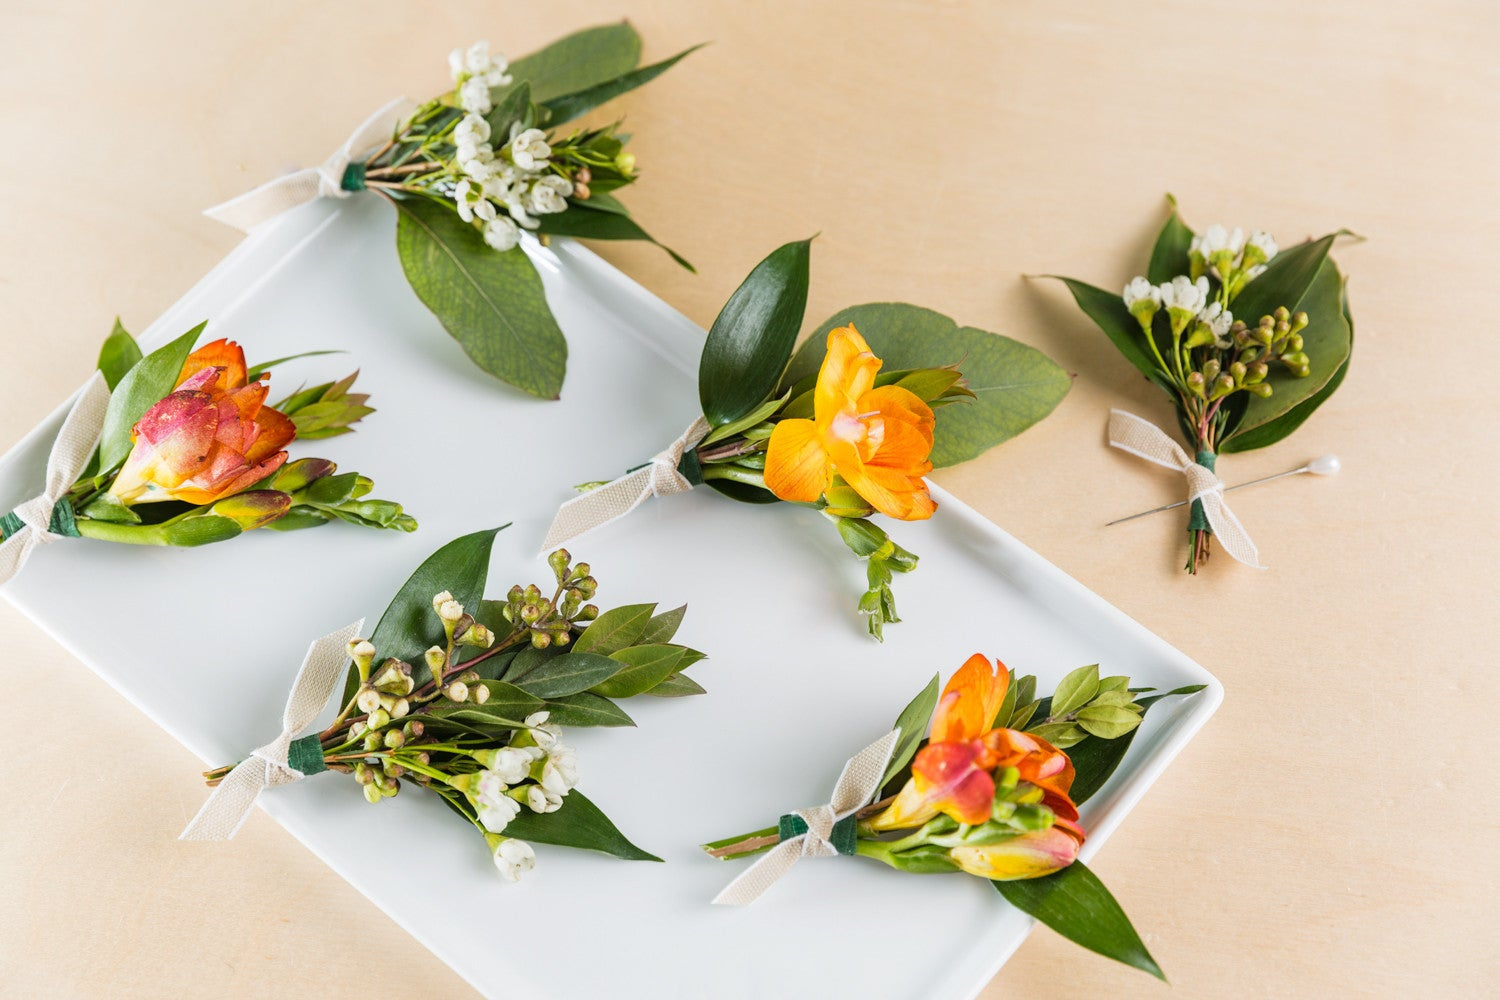 A Chic Wedding DIY That Will Save You So Much Money